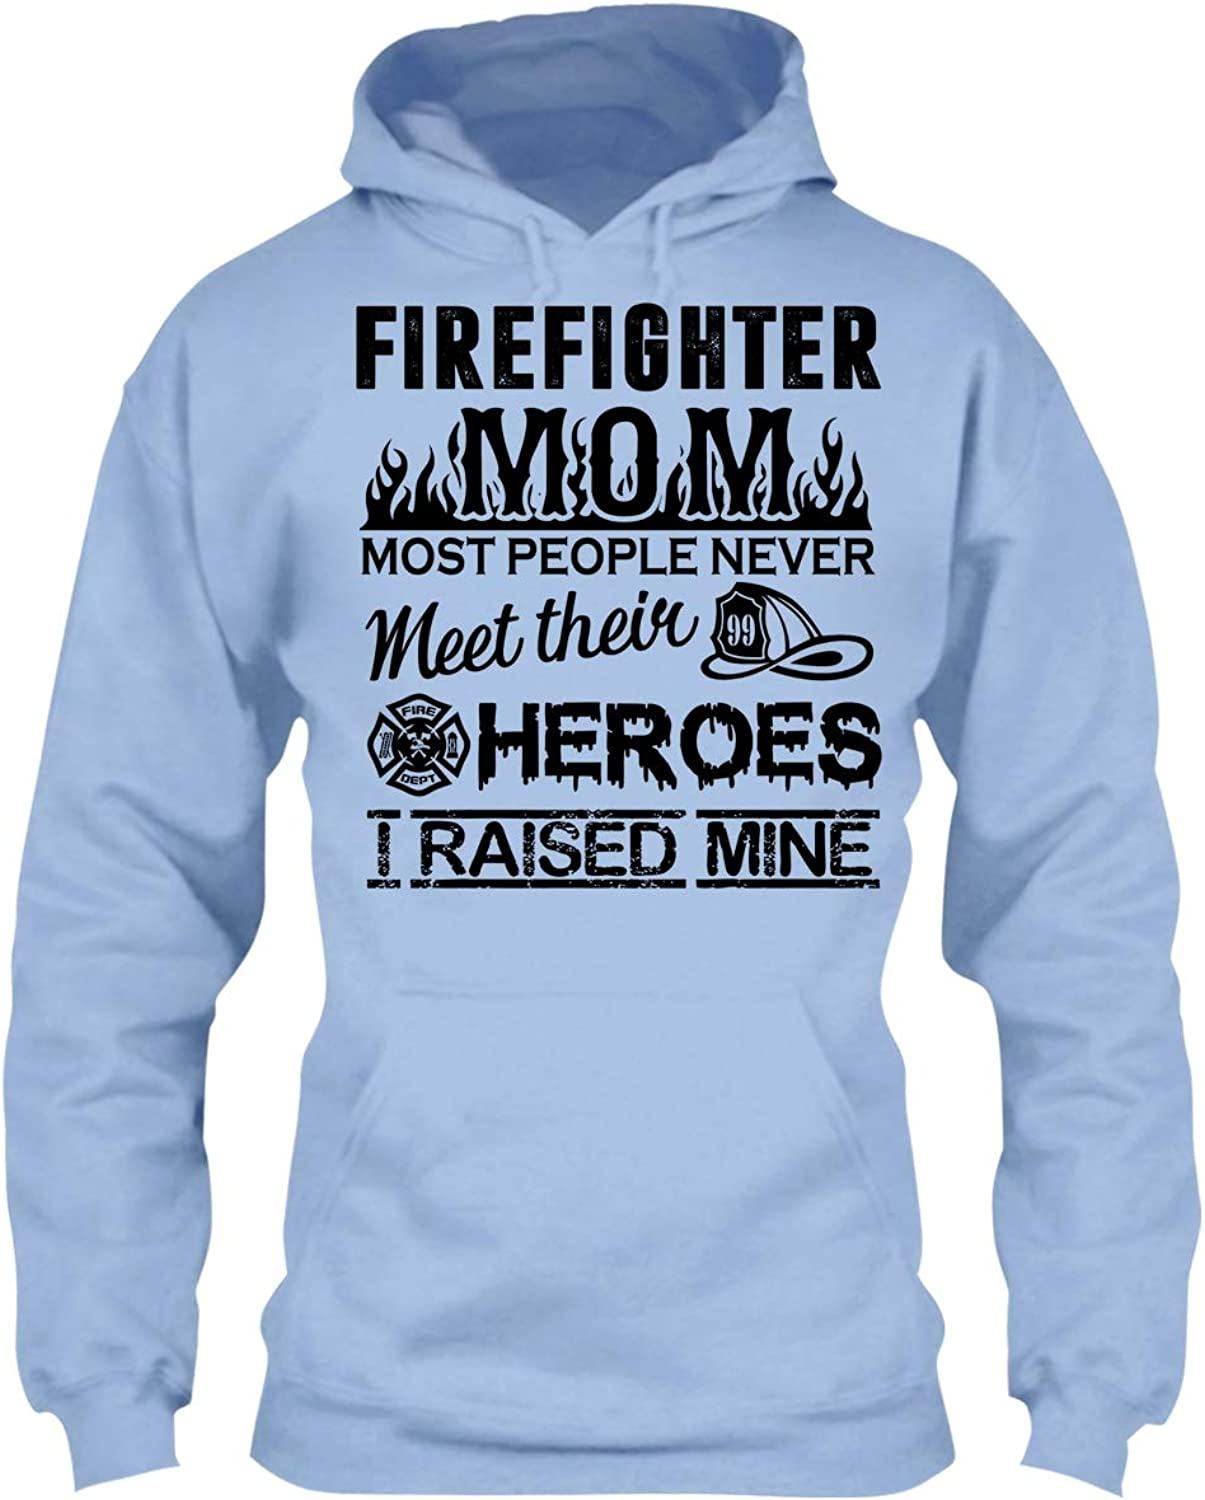 Arered Firefighter T Shirt  Firefighter Mom Cool T Shirts Design